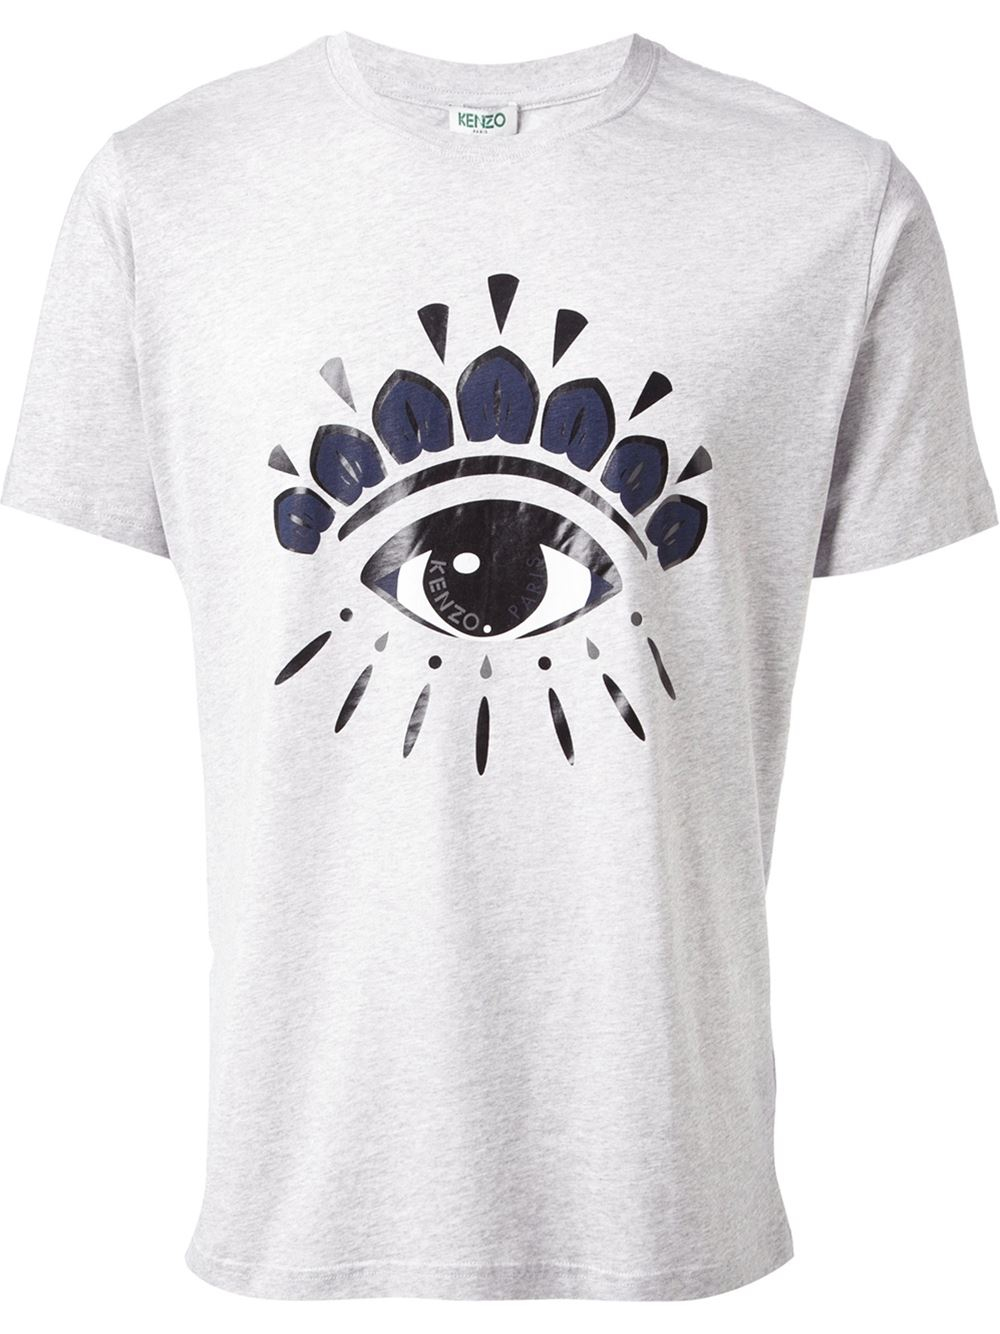 lyst kenzo eye tshirt in gray for men. Black Bedroom Furniture Sets. Home Design Ideas